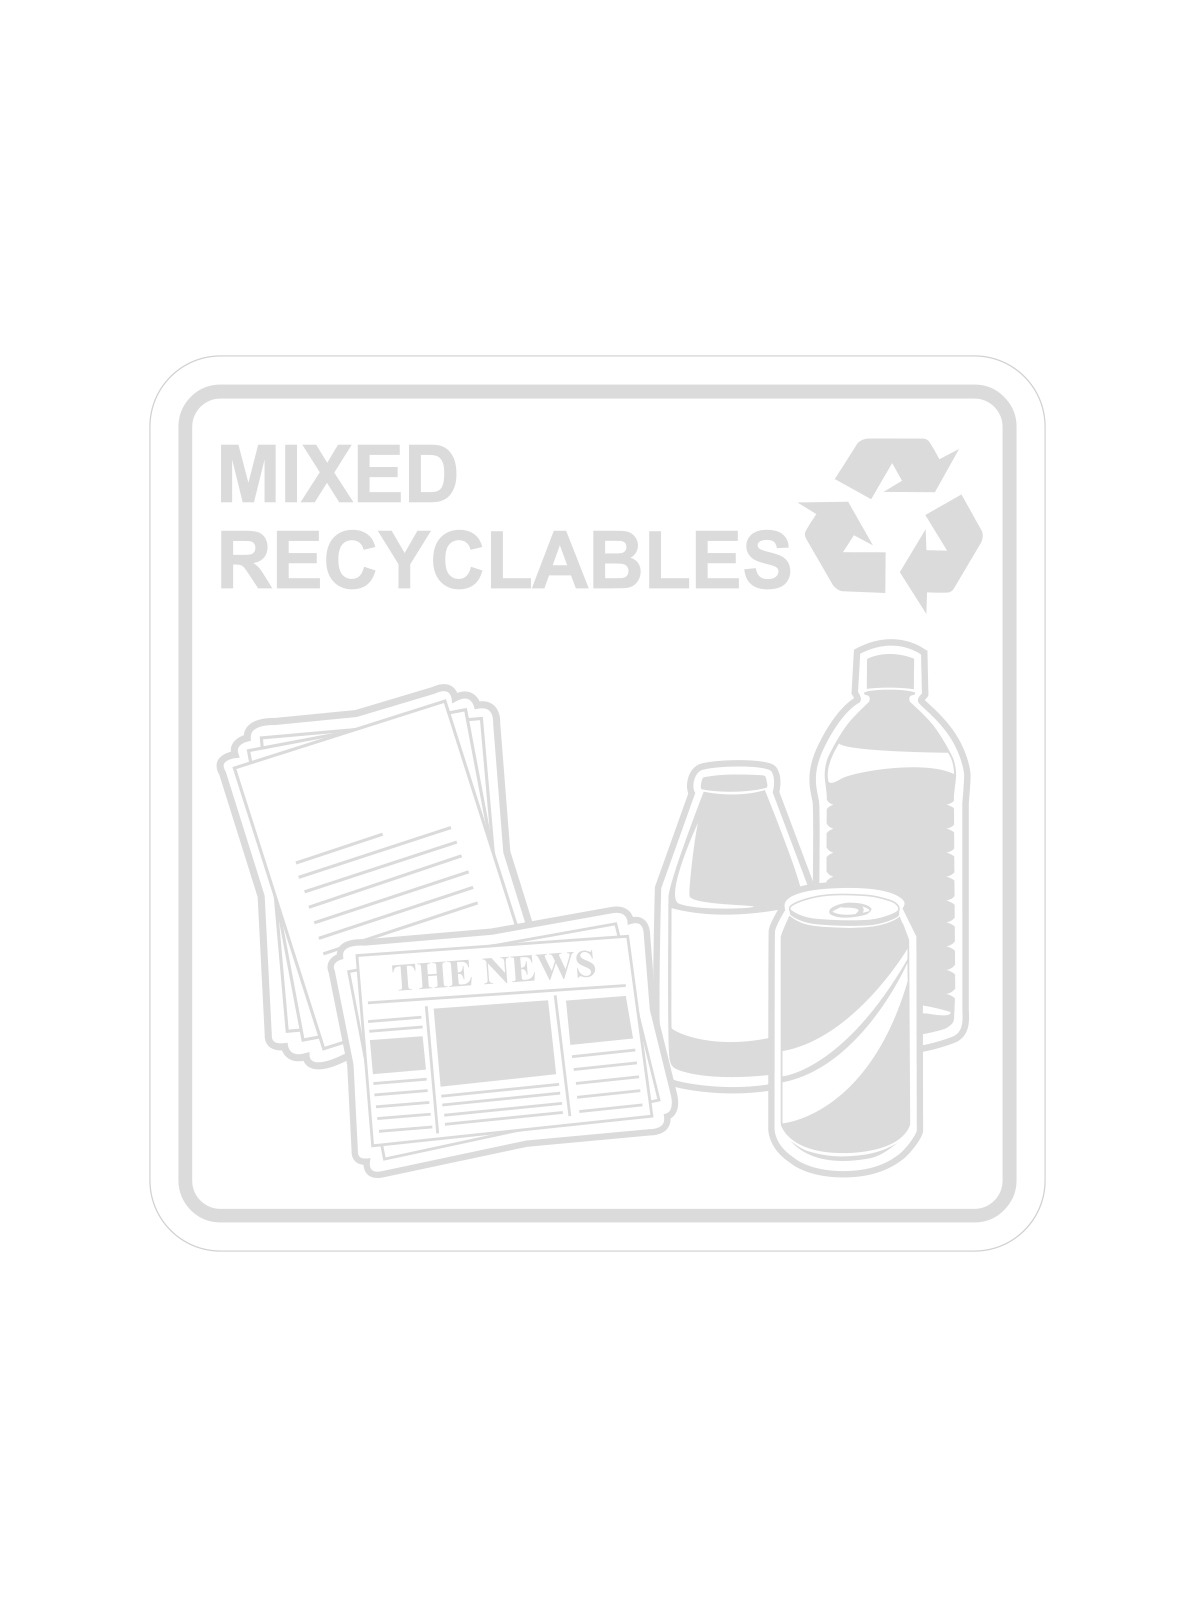 SQUARE LABEL MIXED RECYCLABLES